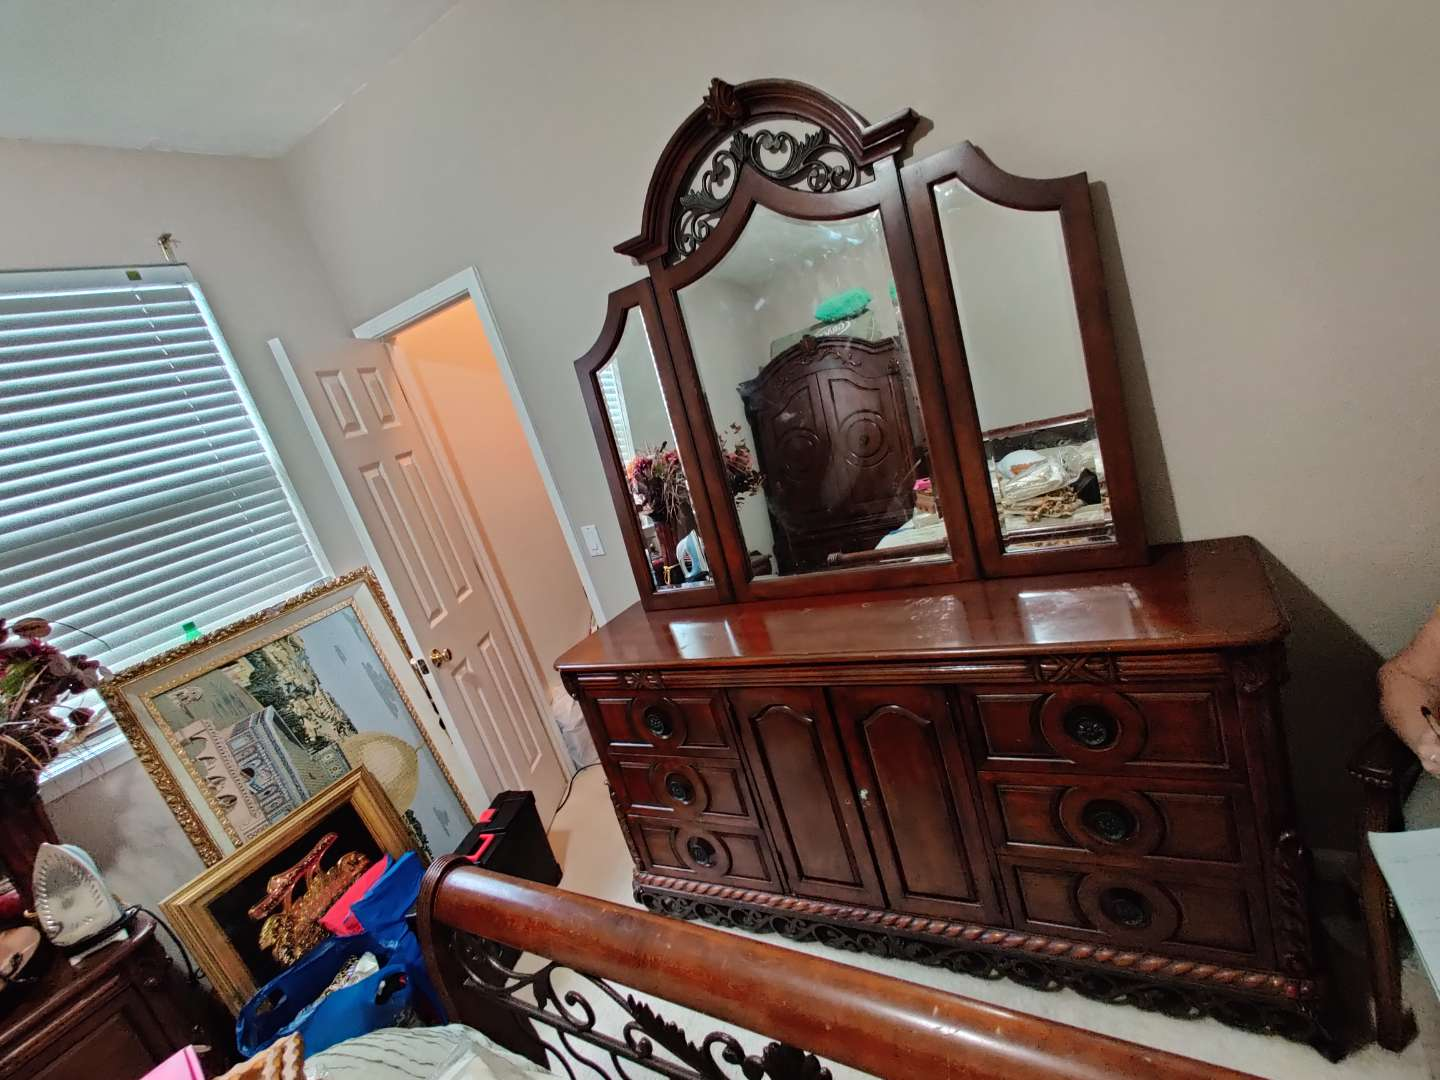 75 very nice Cherry finished dresser and mirror 89 inches wide missing the two knobs on the two doors